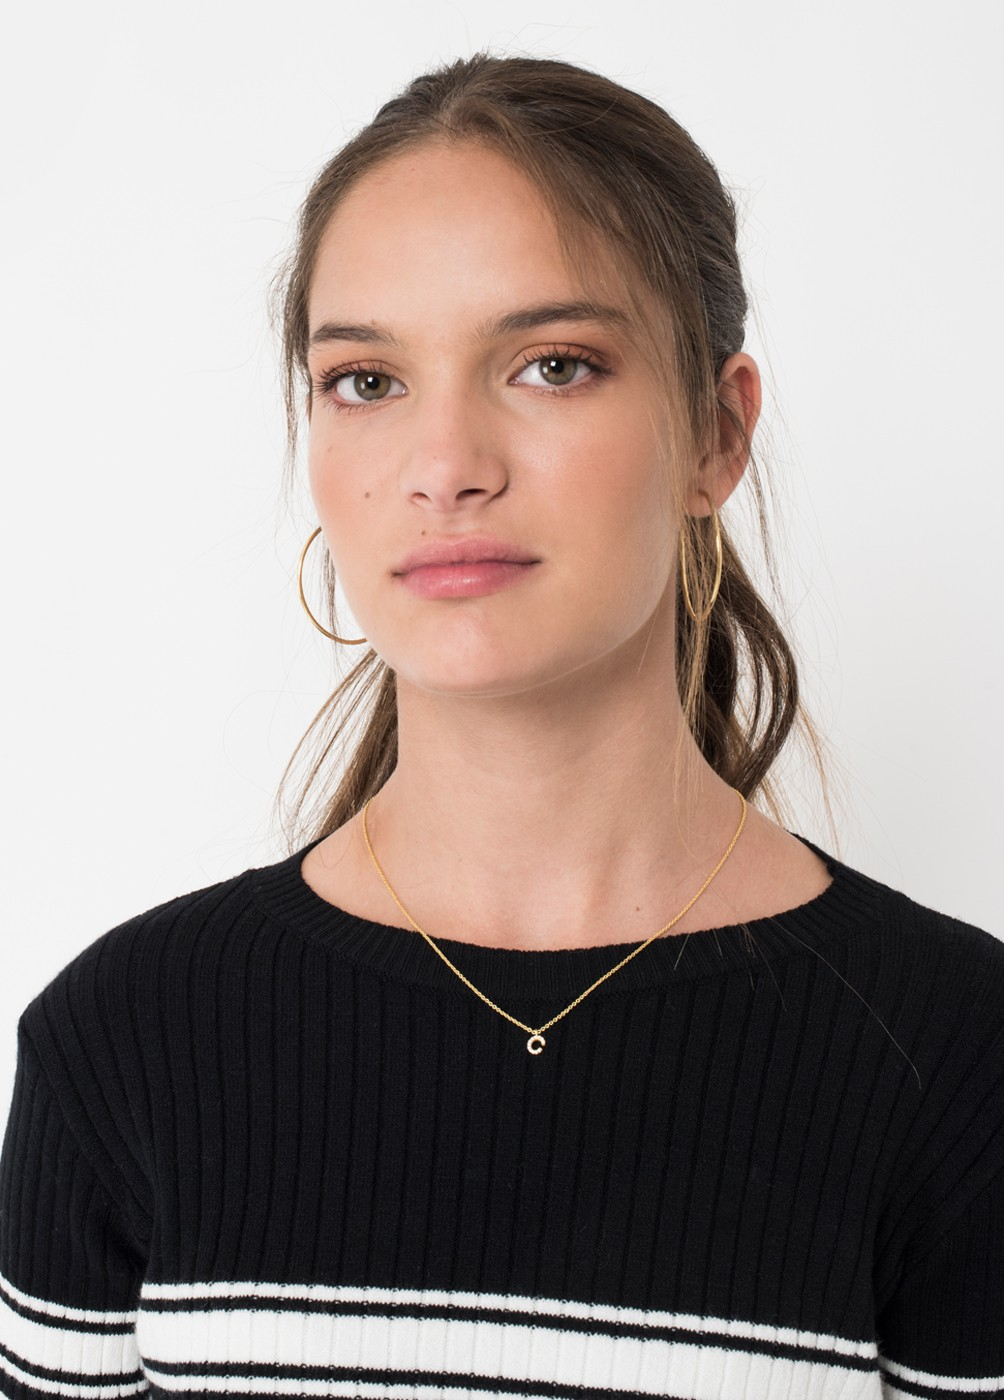 ZIRCONIA NECKLACE WITH INITIAL